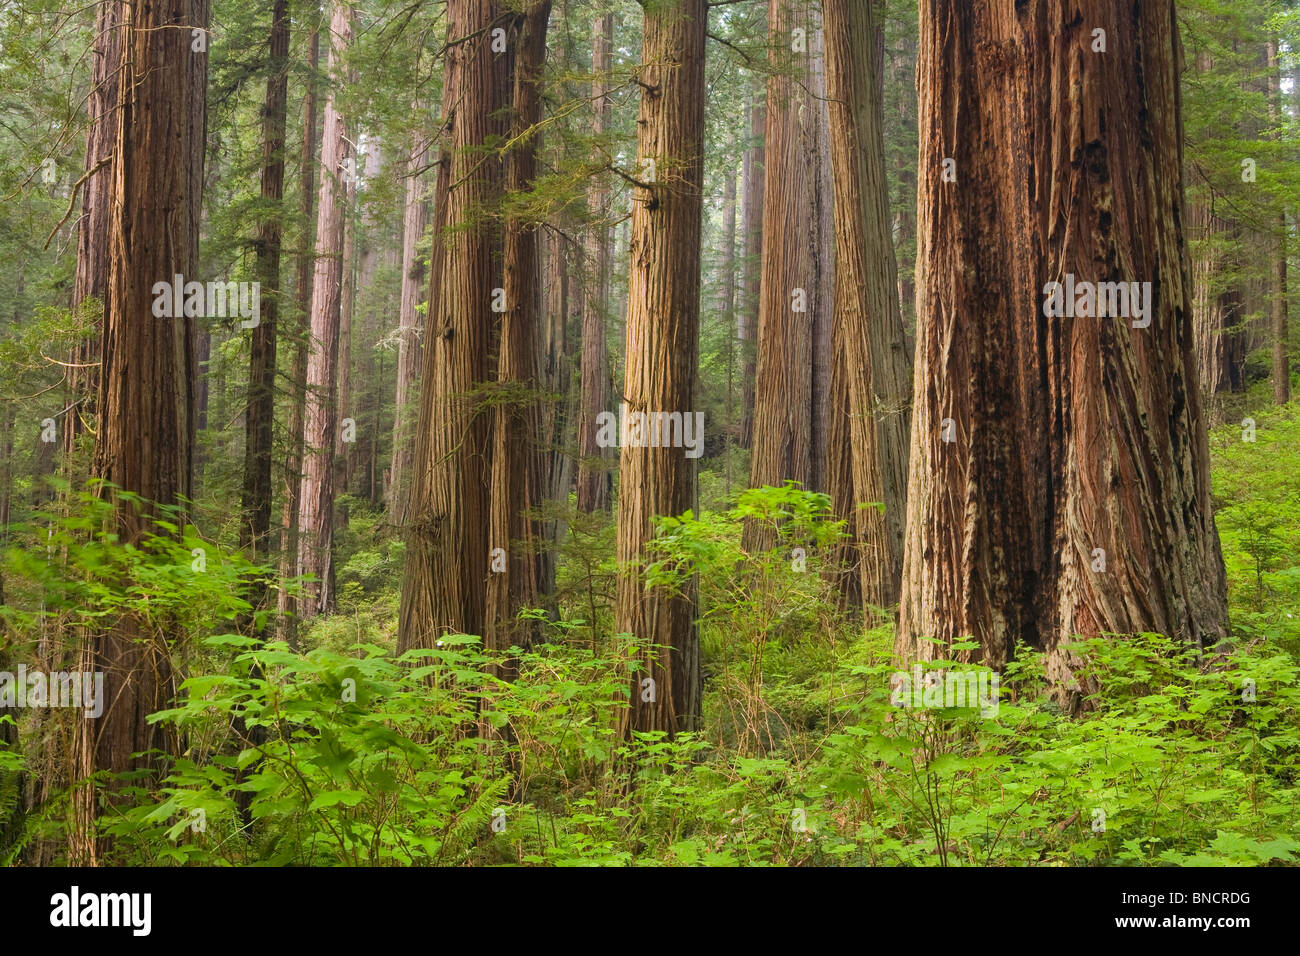 California, Redwood National Park, Redwoods, Redwood forest, (Sequoia sempervirens) - Stock Image